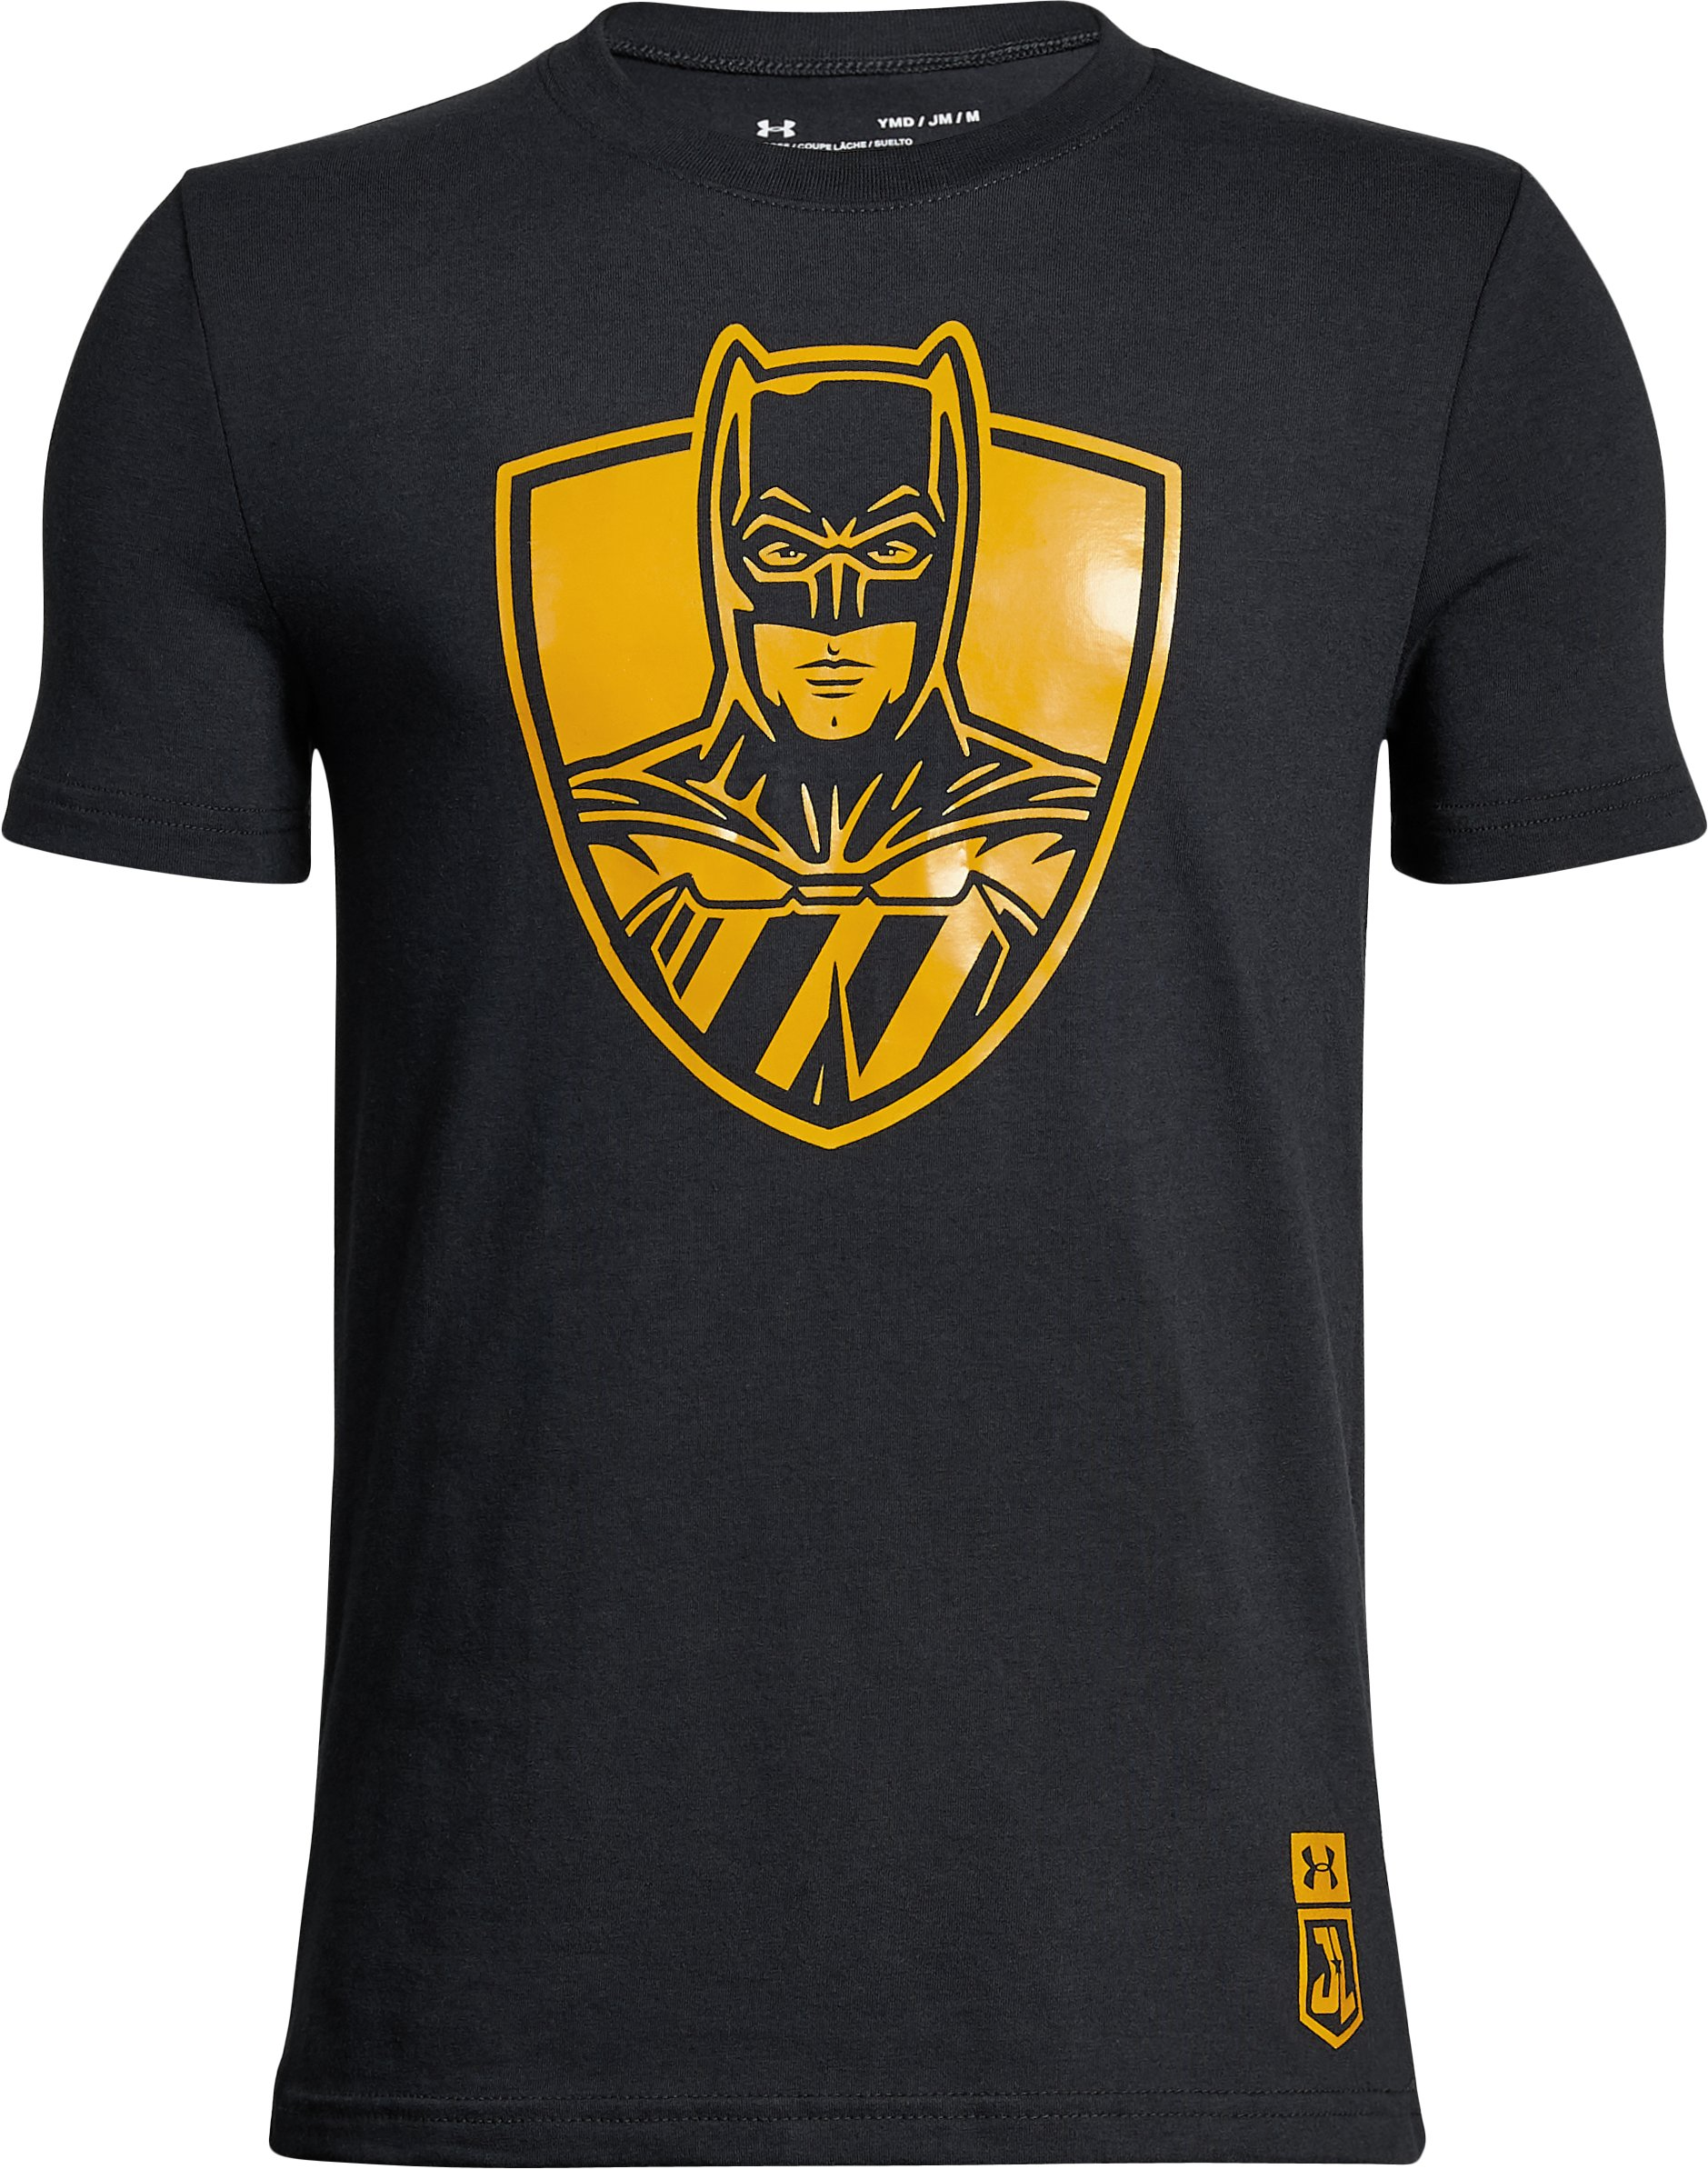 Boys' Under Armour® Alter Ego Justice League Batman T-Shirt, Black ,